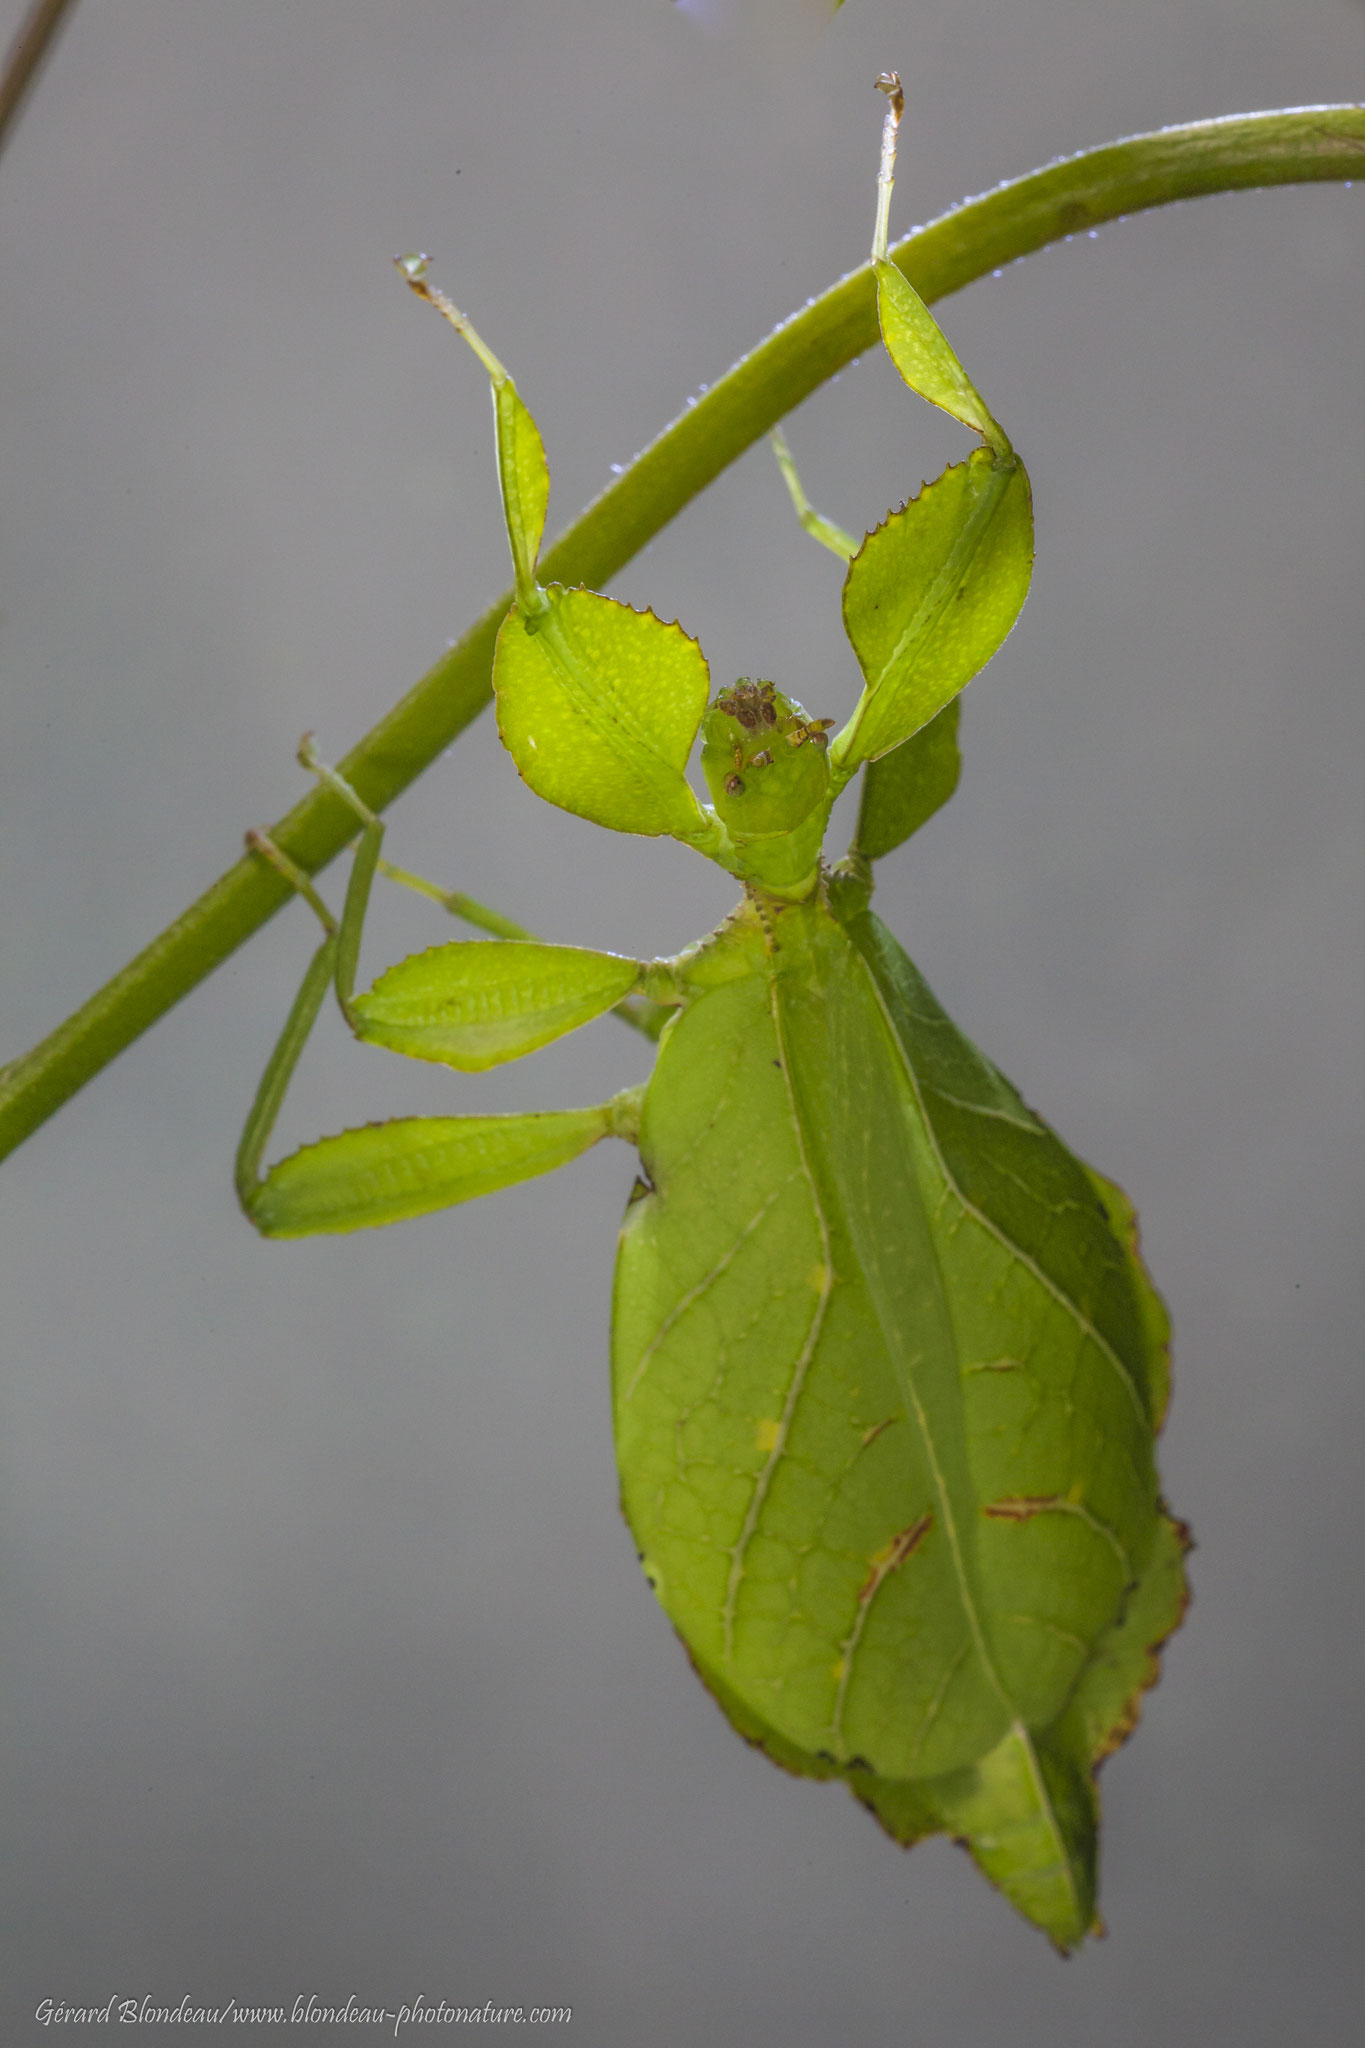 Phasme feuille, phyllie